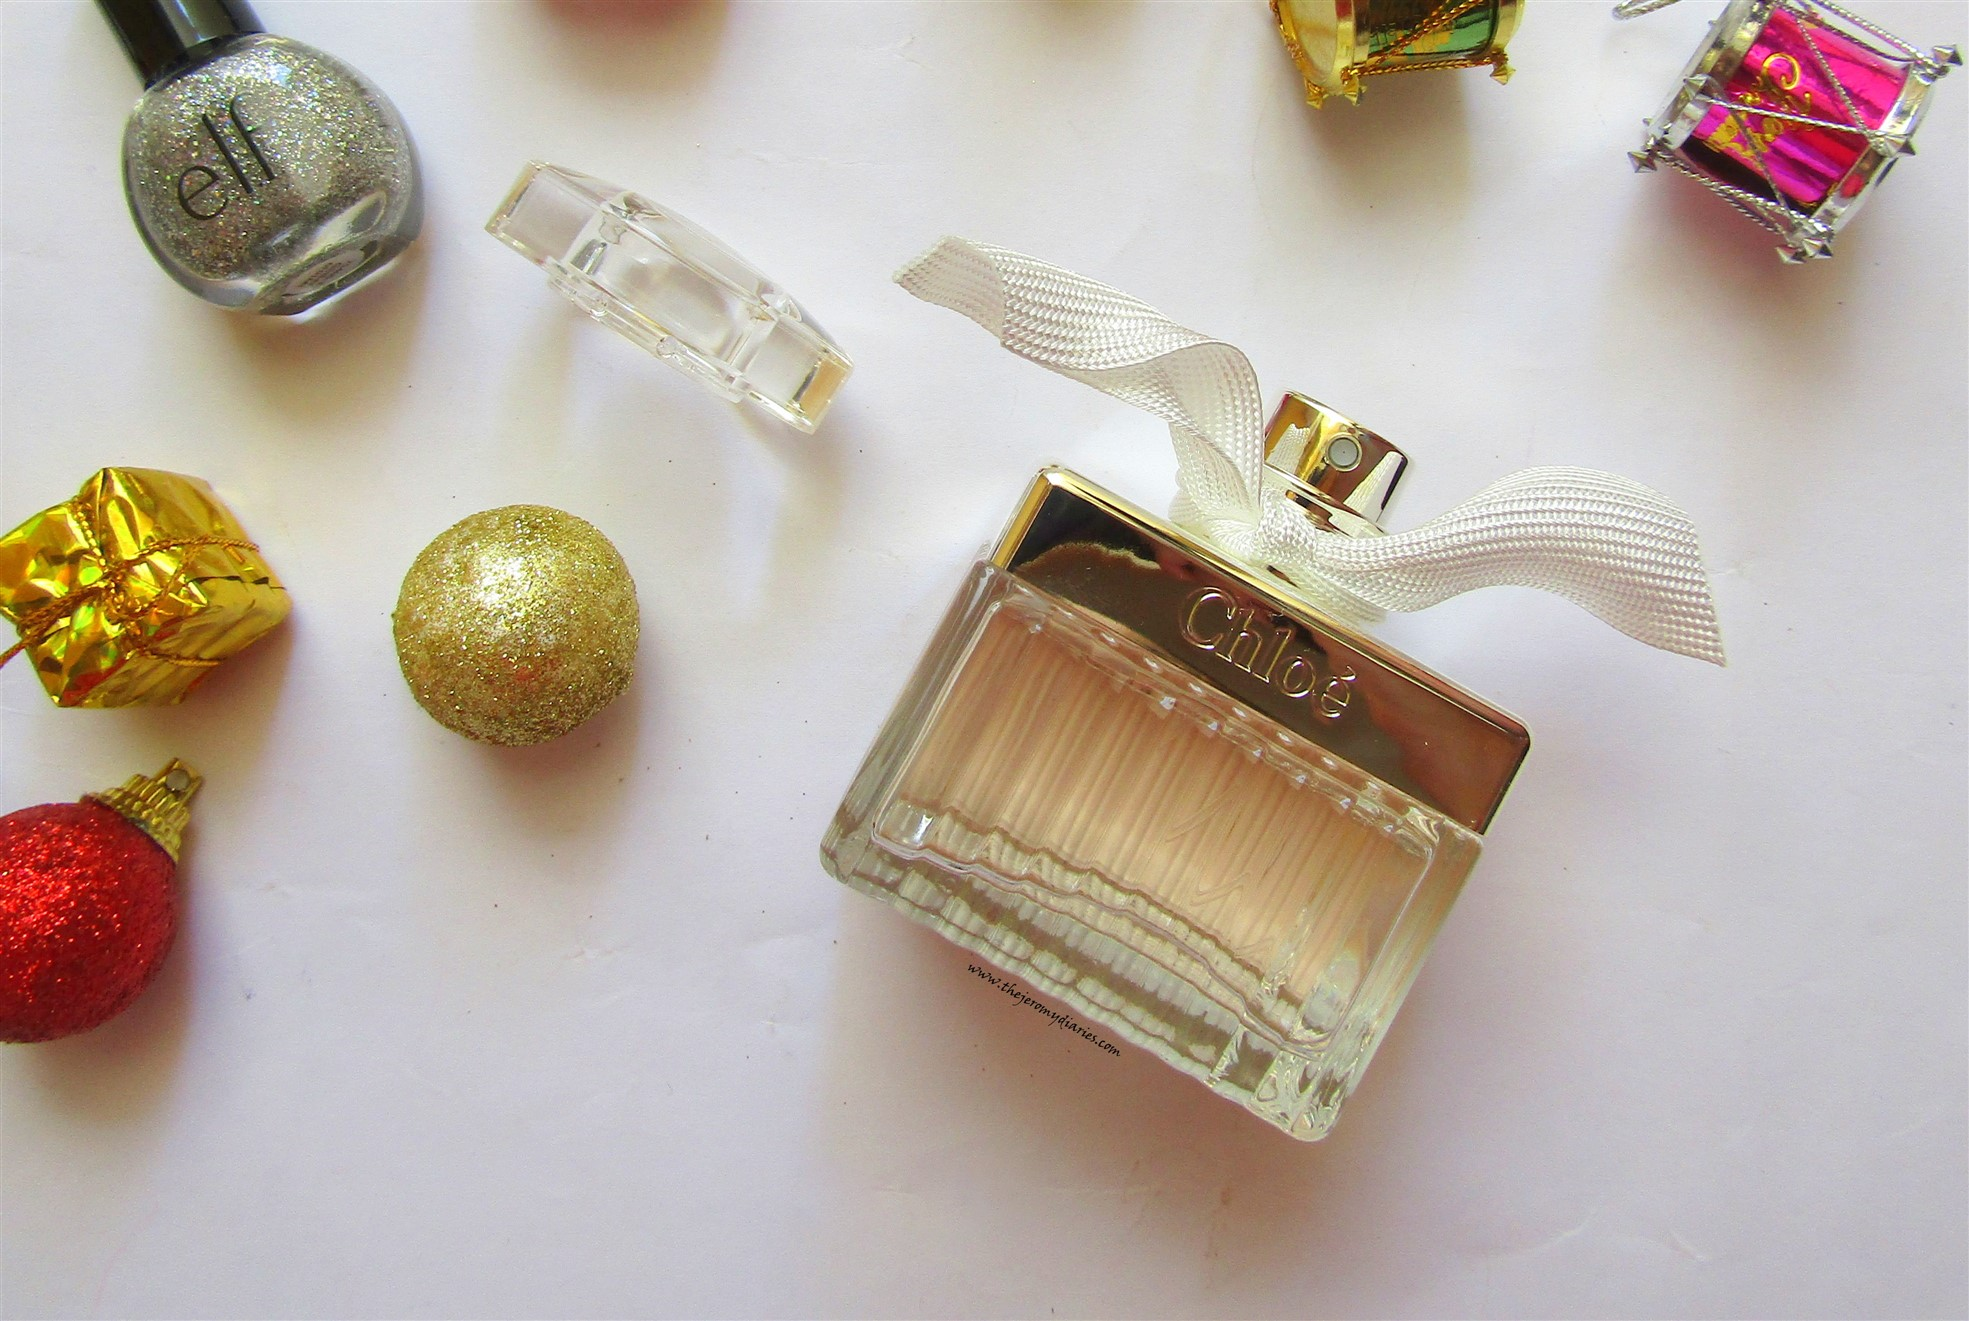 chloe eau de toilette x the jeromy diaries